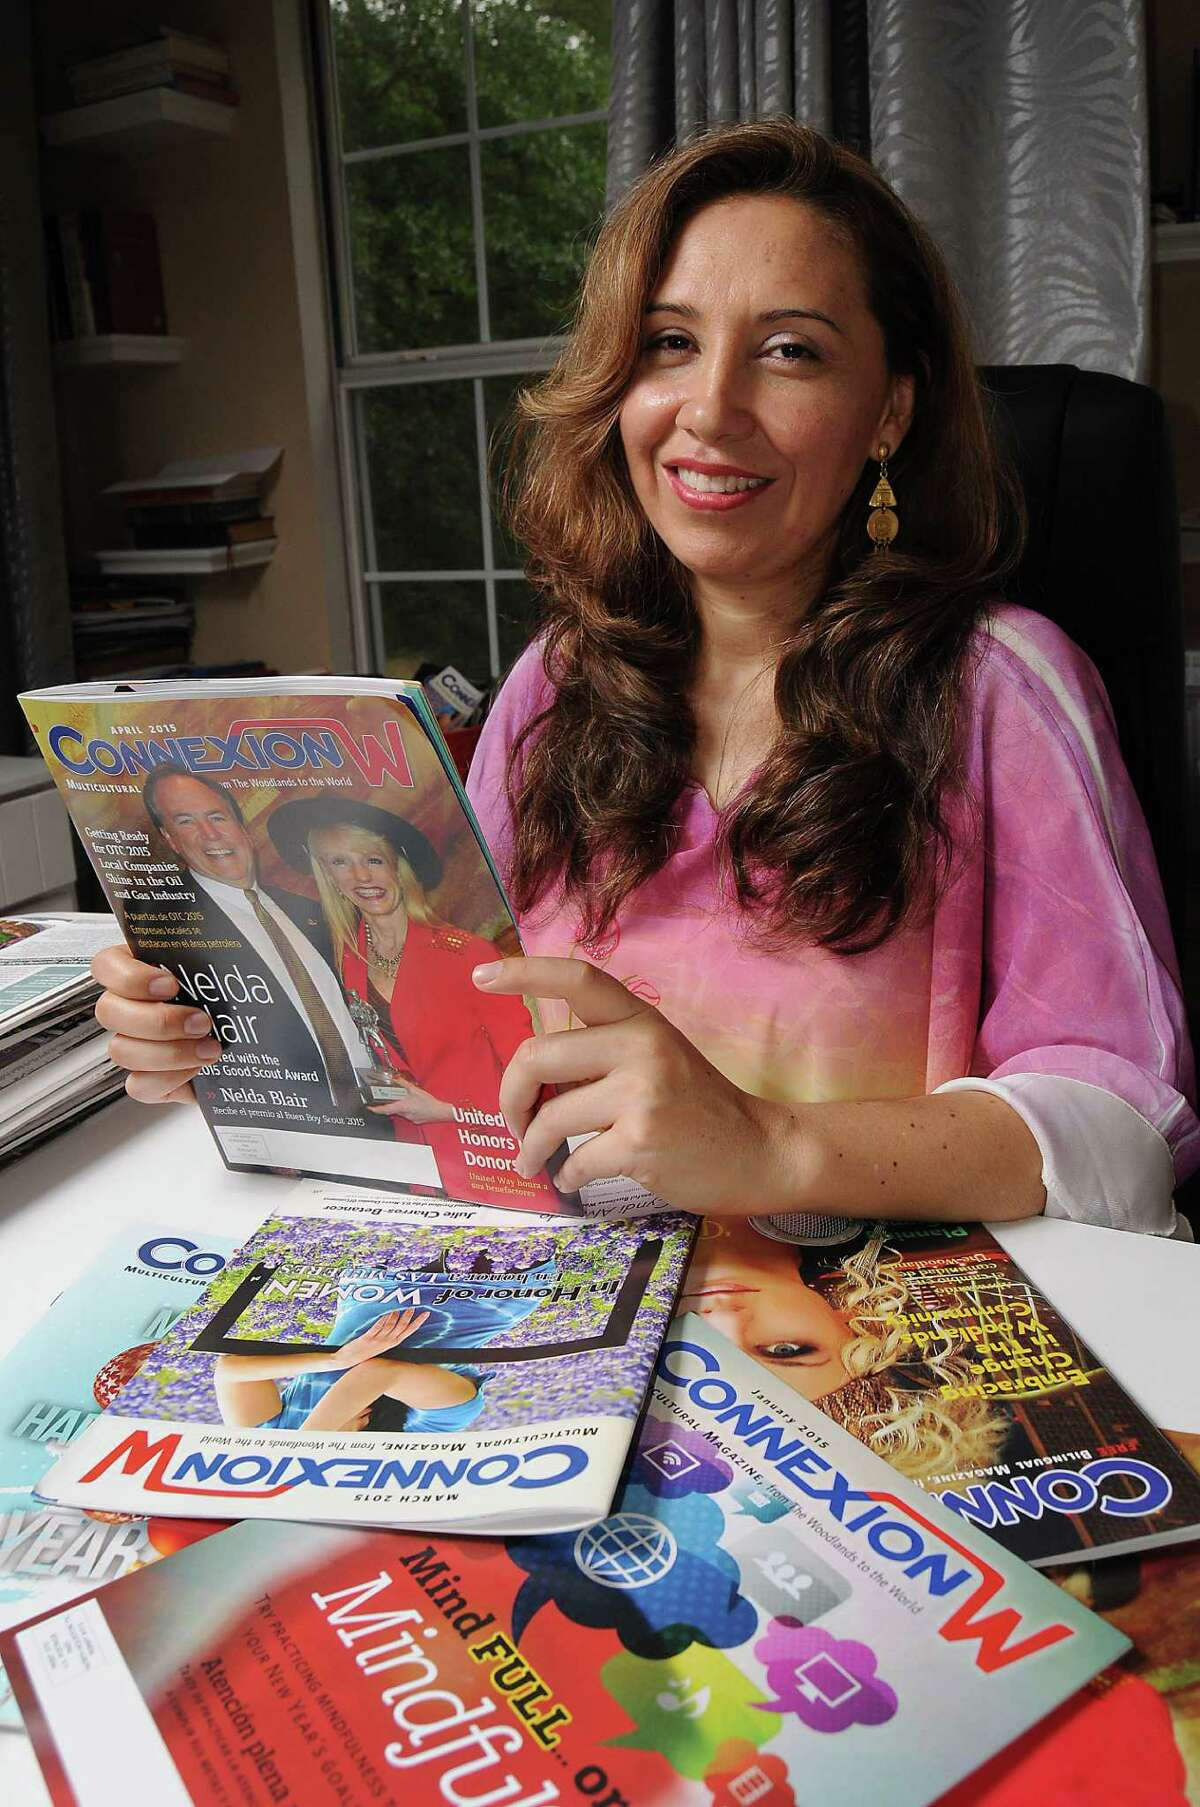 ConnexionW publisher Alba Malaver puts together the magazine from an office in her home with the help of her sister-in-law, Ruth Arce, who markets it and sells advertising.